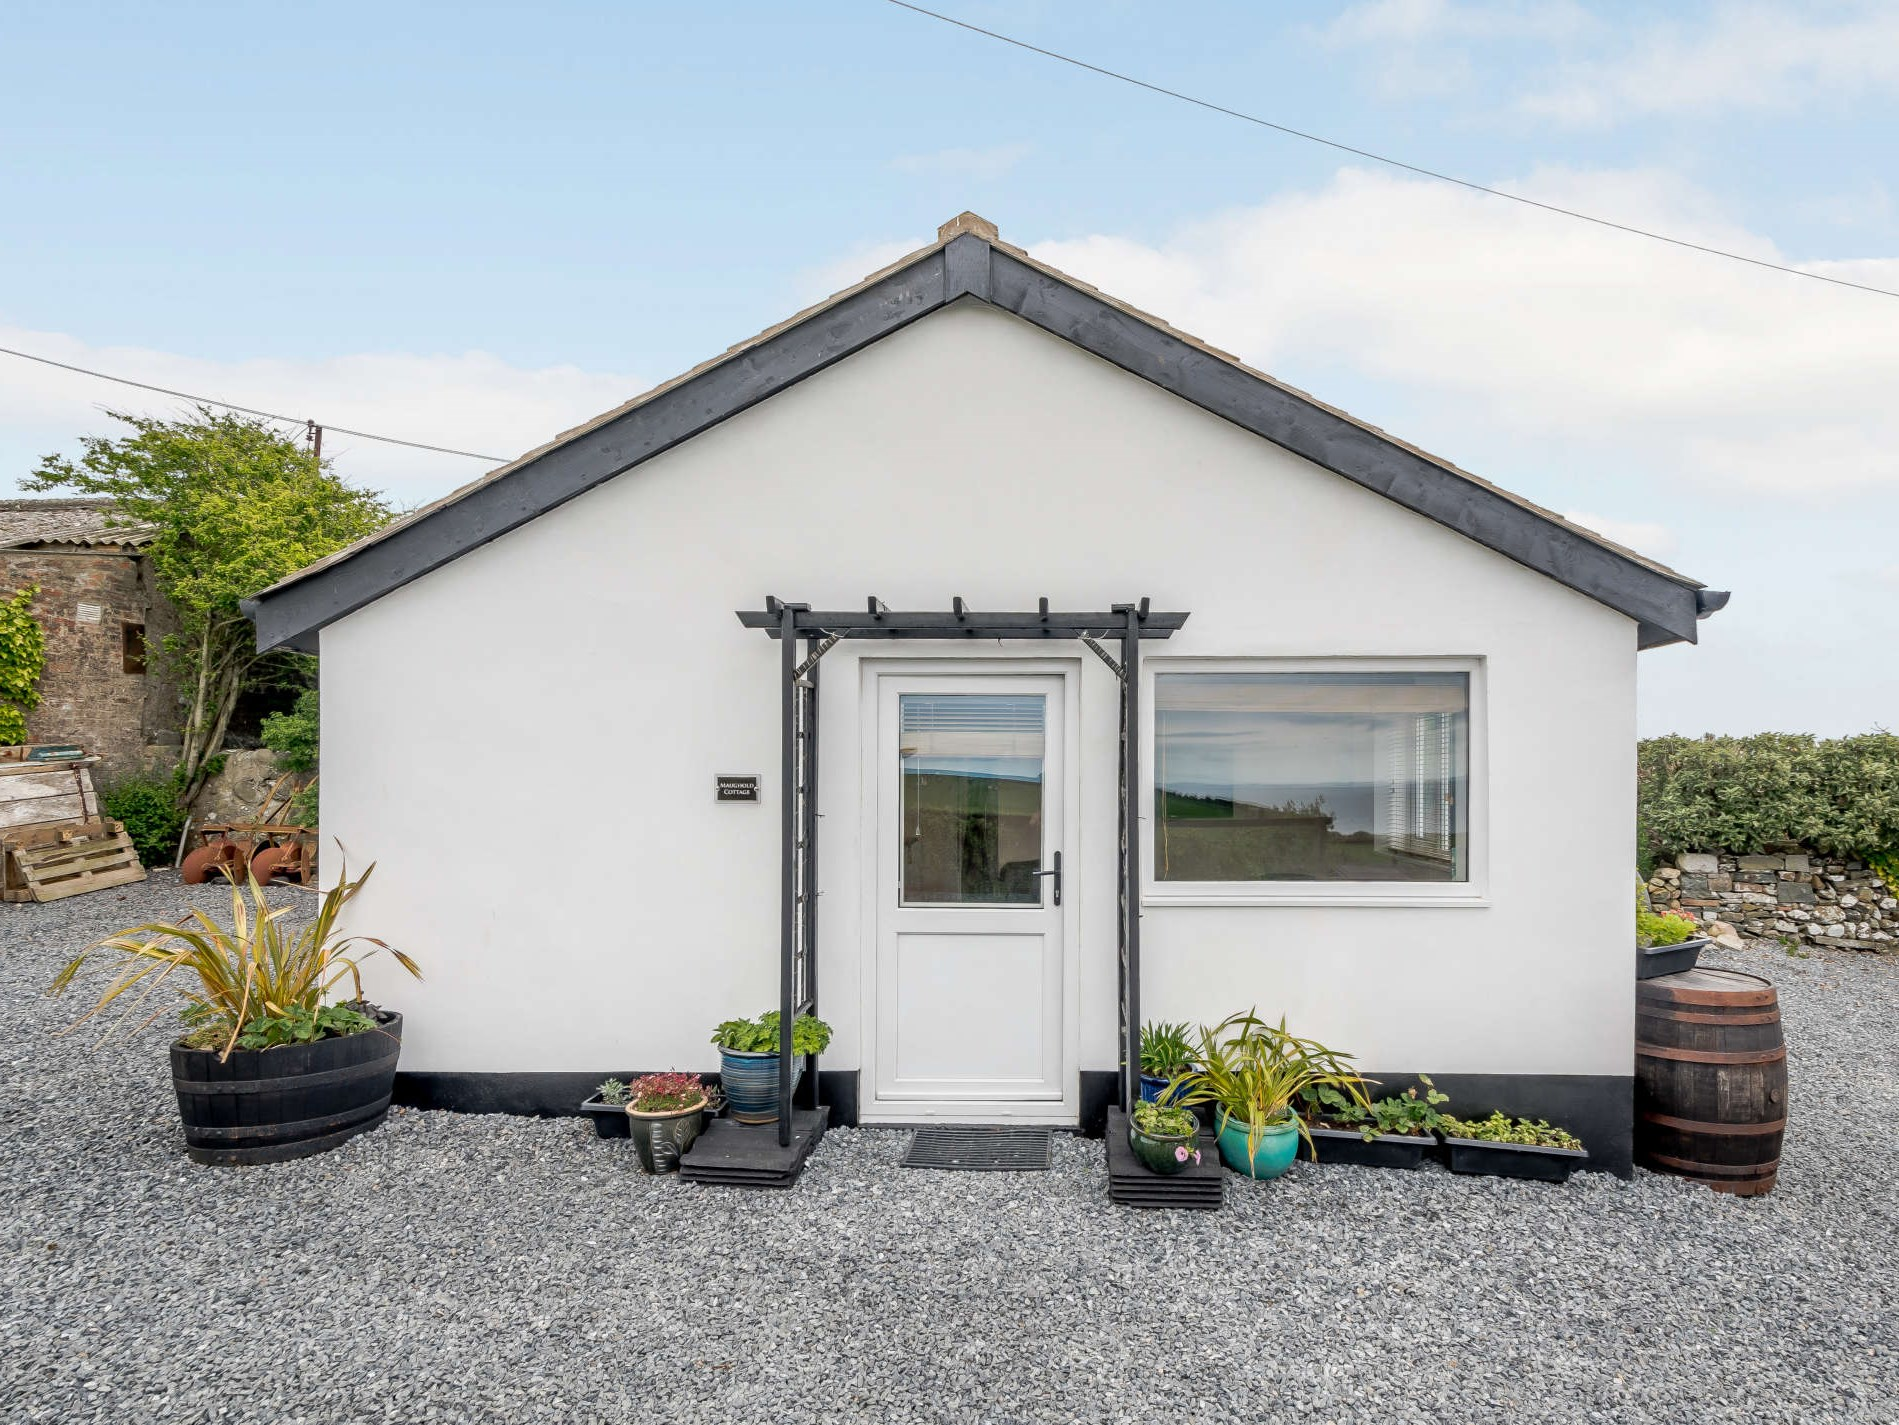 1 Bedroom Cottage in Newton Stewart, Ayrshire and Dumfries & Galloway